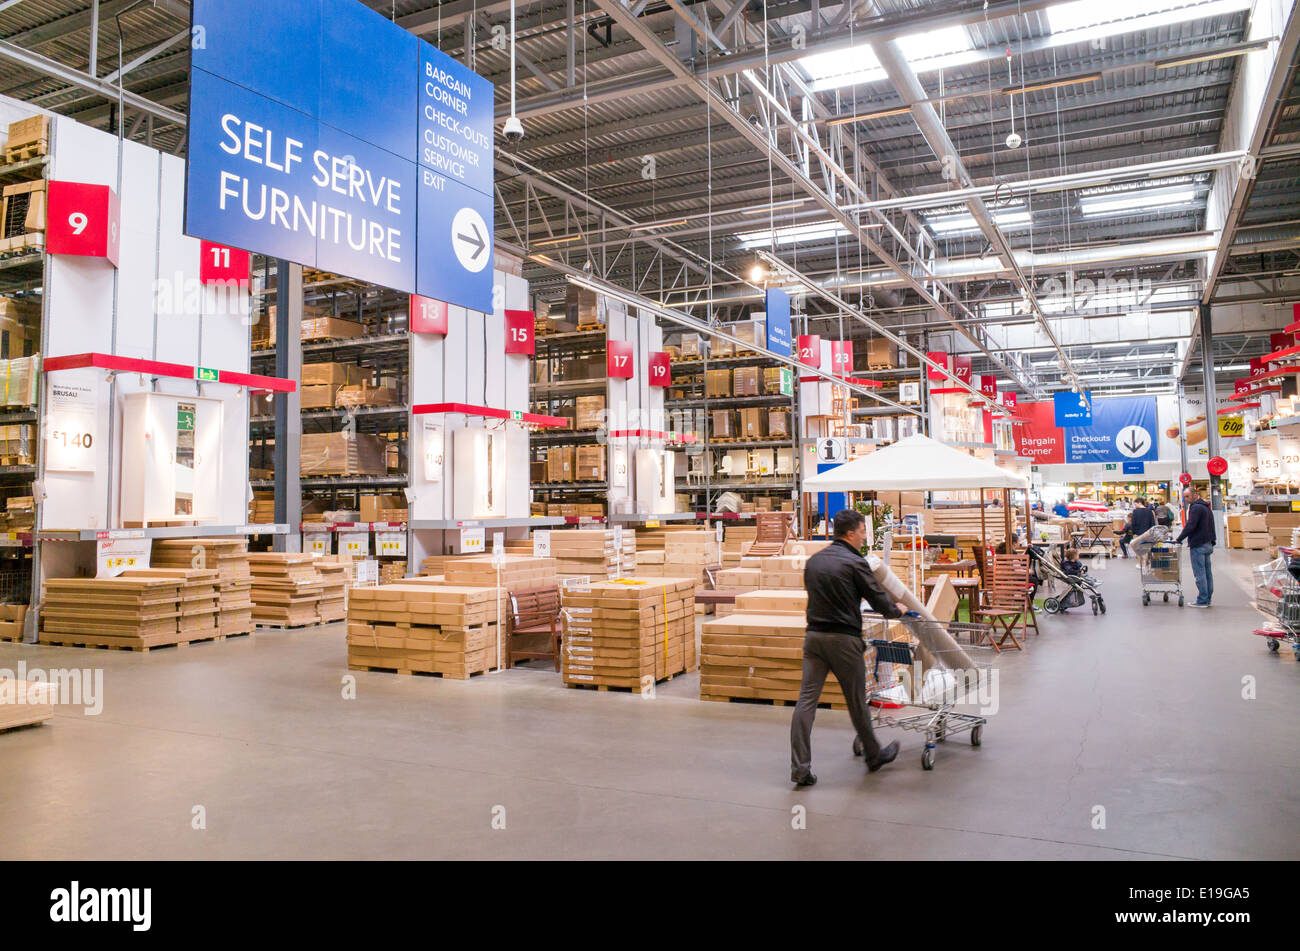 Stock Photo   Warehouse Area Of Ikea Furniture Store, England, UK